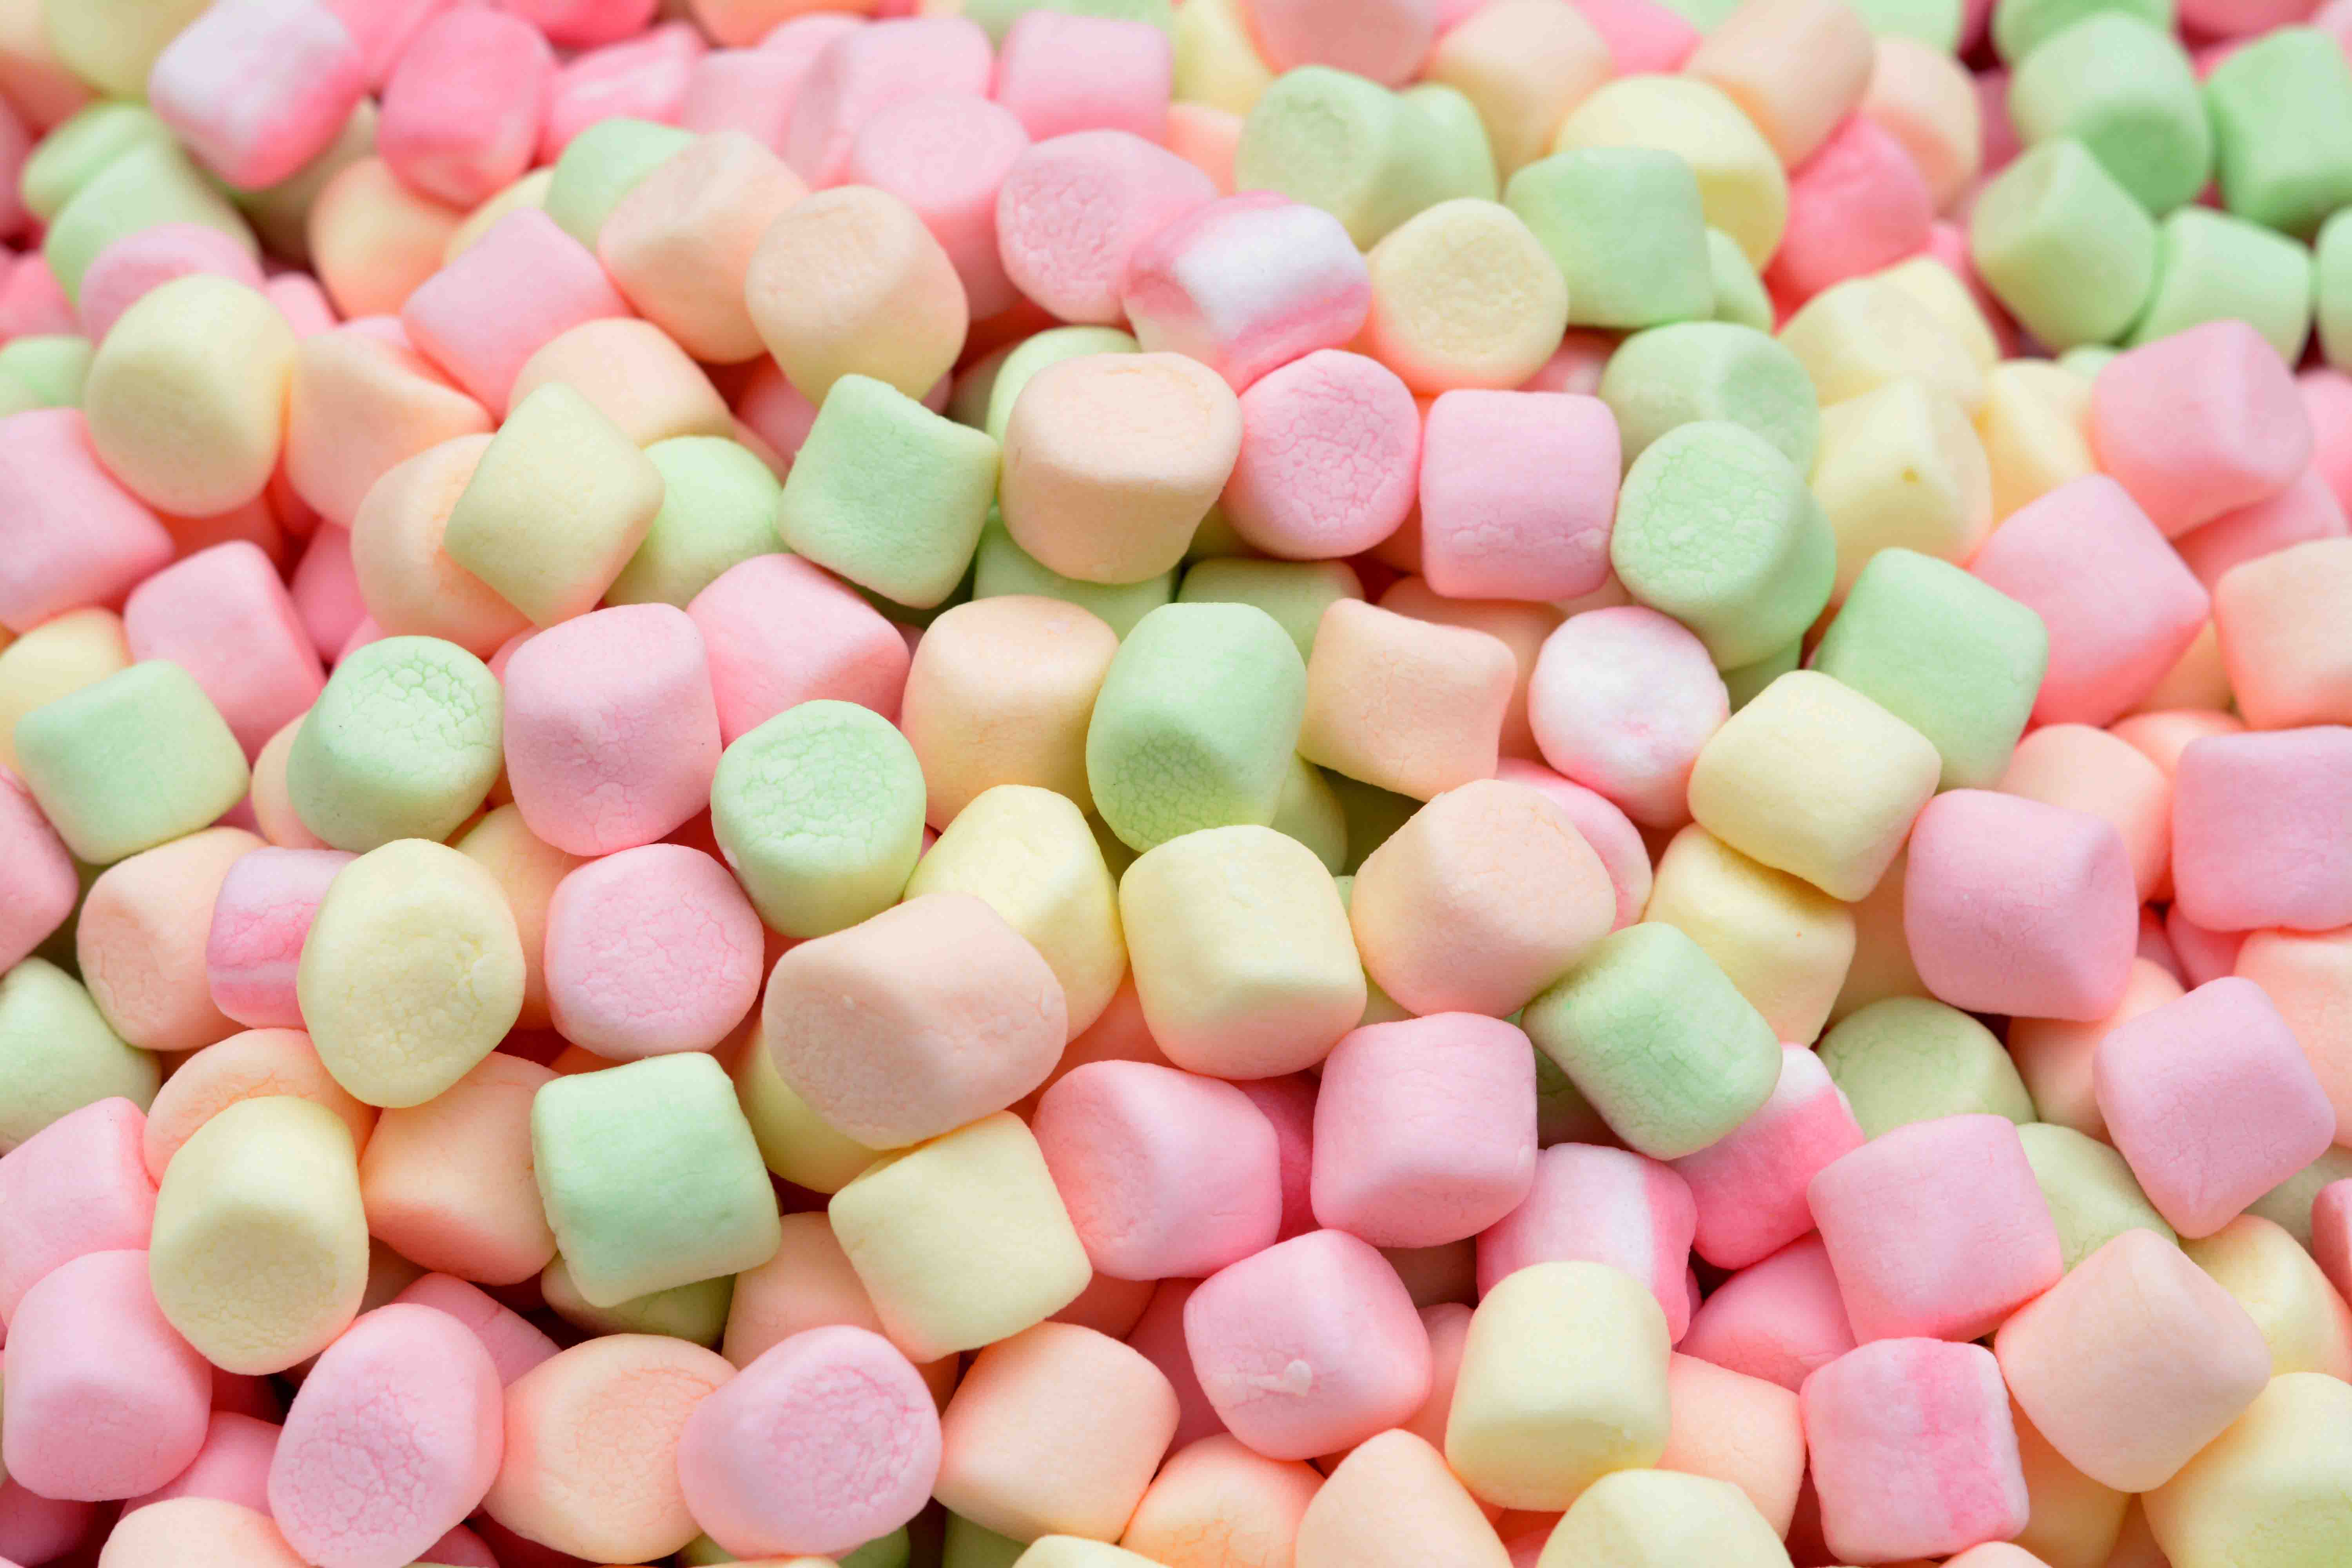 17 marshmallow hd wallpapers background images wallpaper abysshd wallpaper background image id 659081